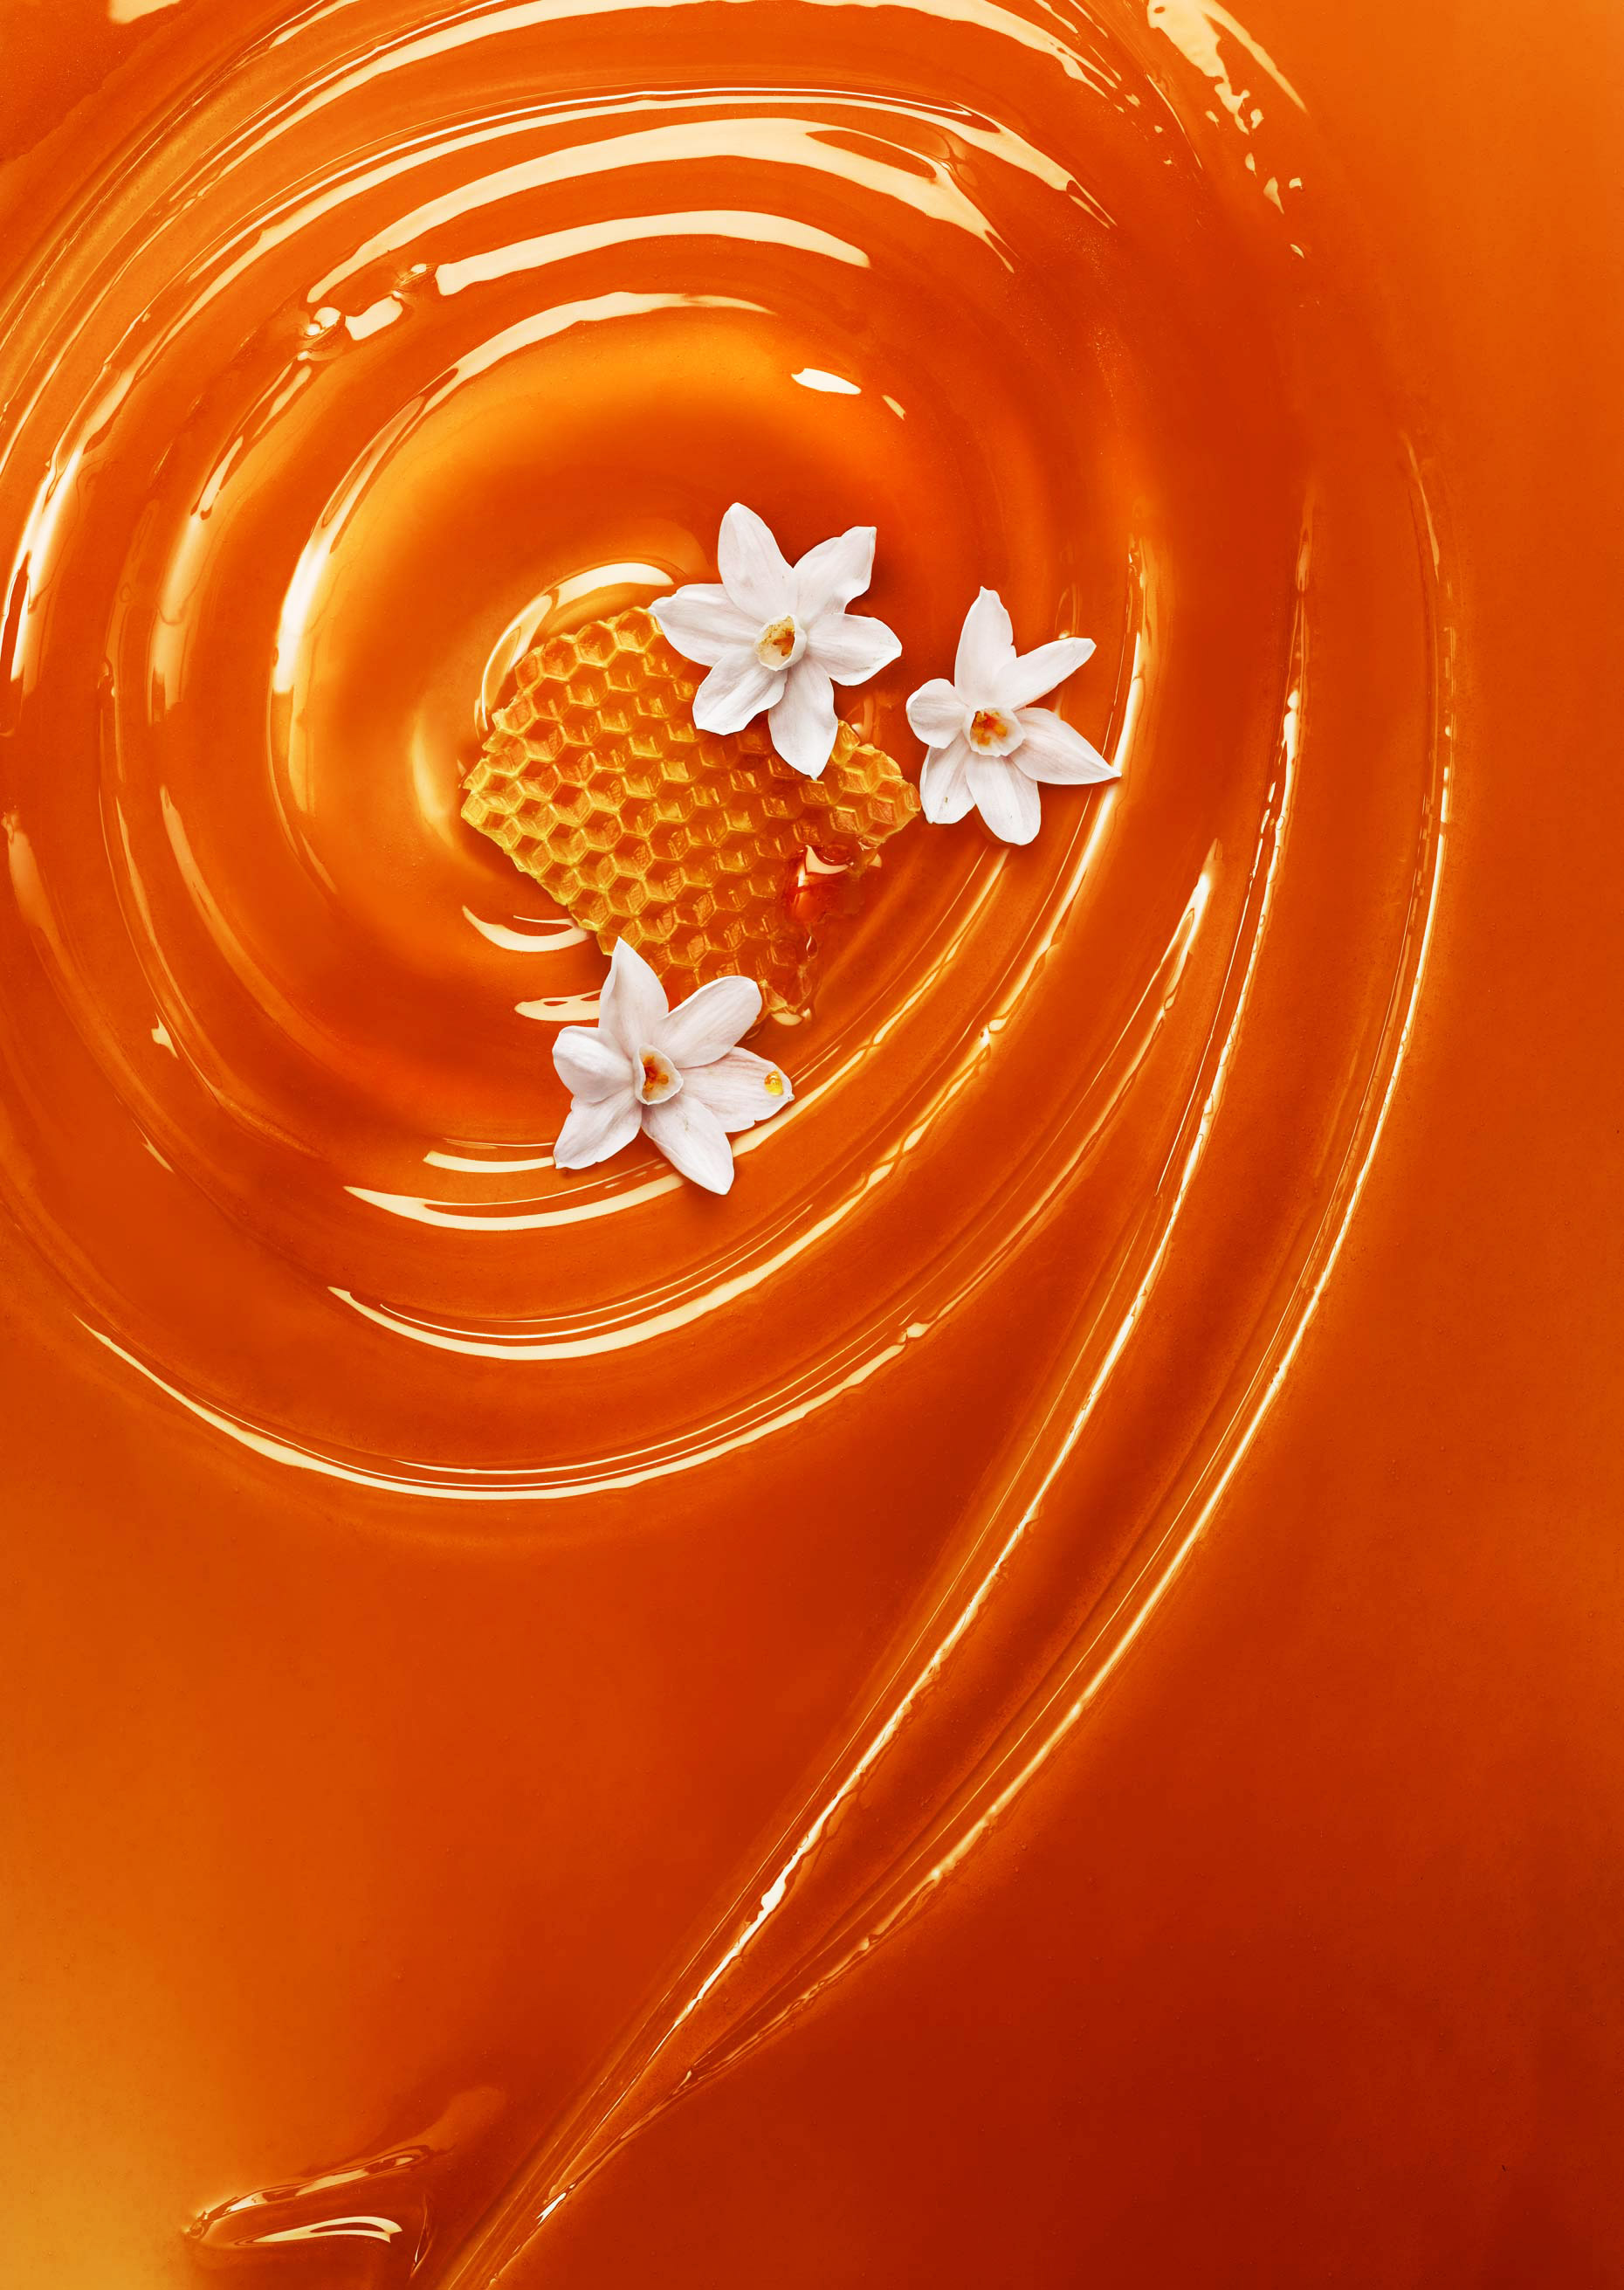 AdrianMueller_Liquids_Photographer_NYC_JKR_Caress_Uplift_OBlossomHoney_FINAL